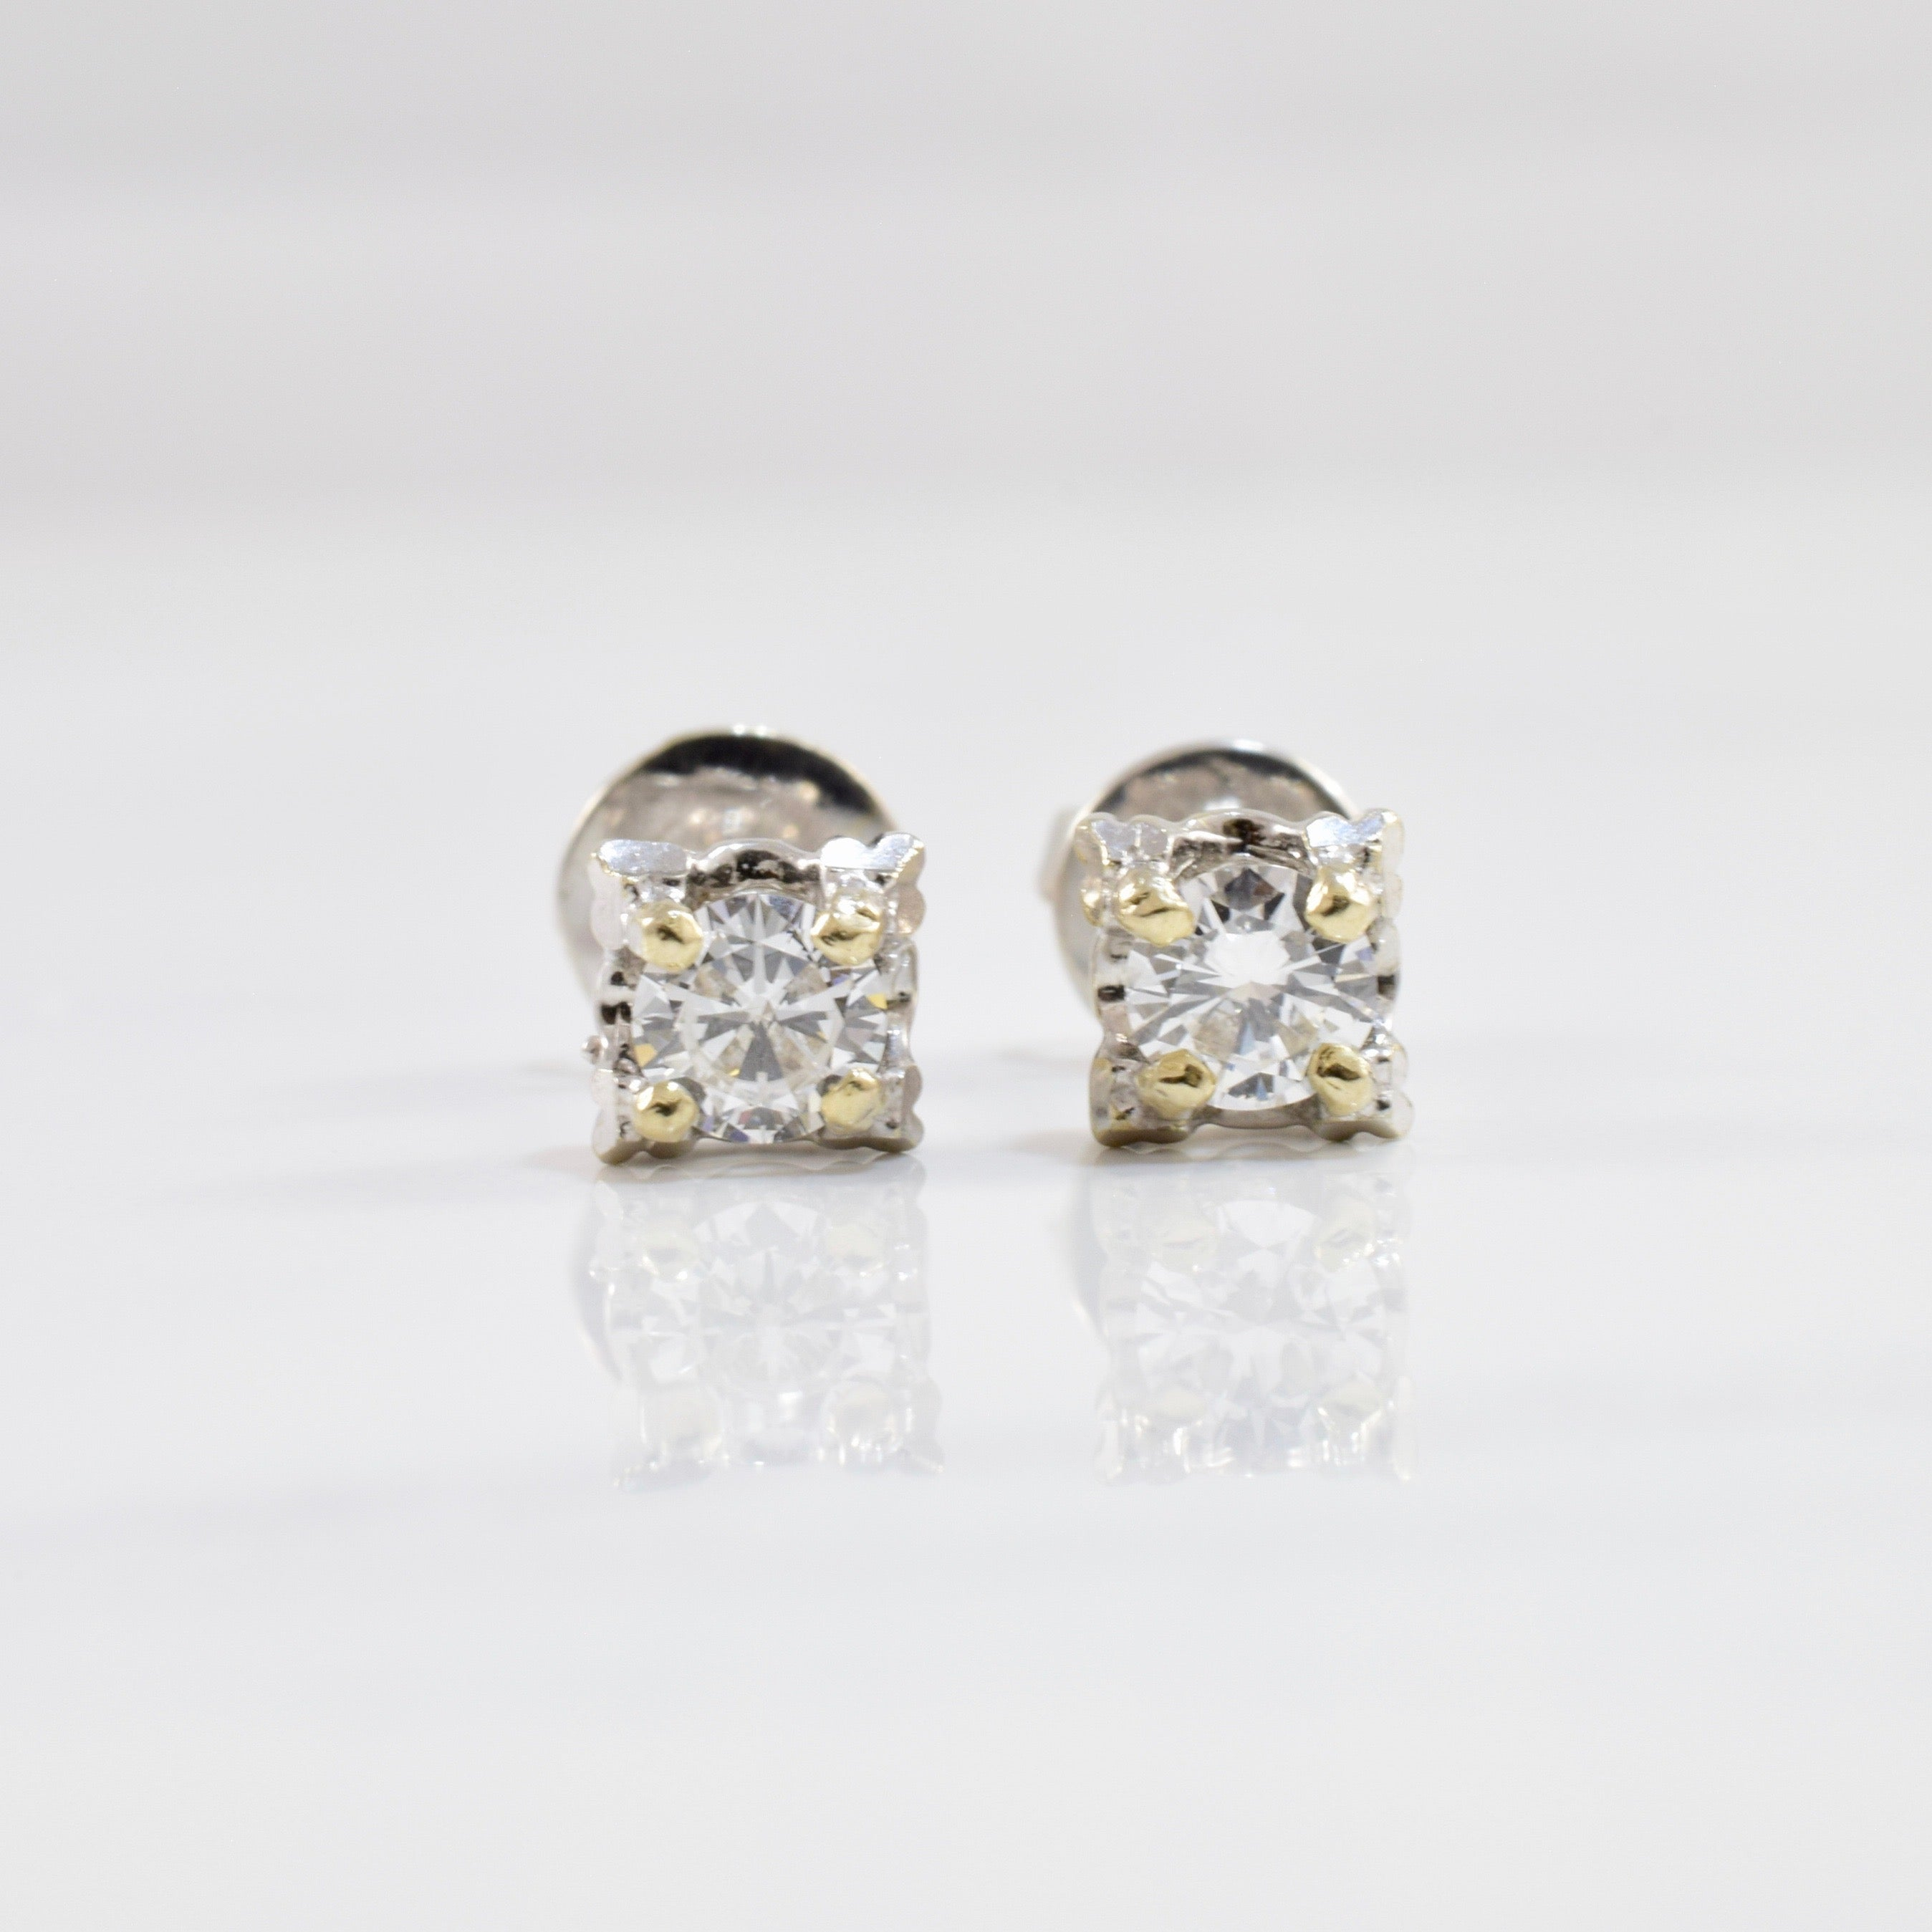 Diamond Stud Earrings | 0.46 ctw |